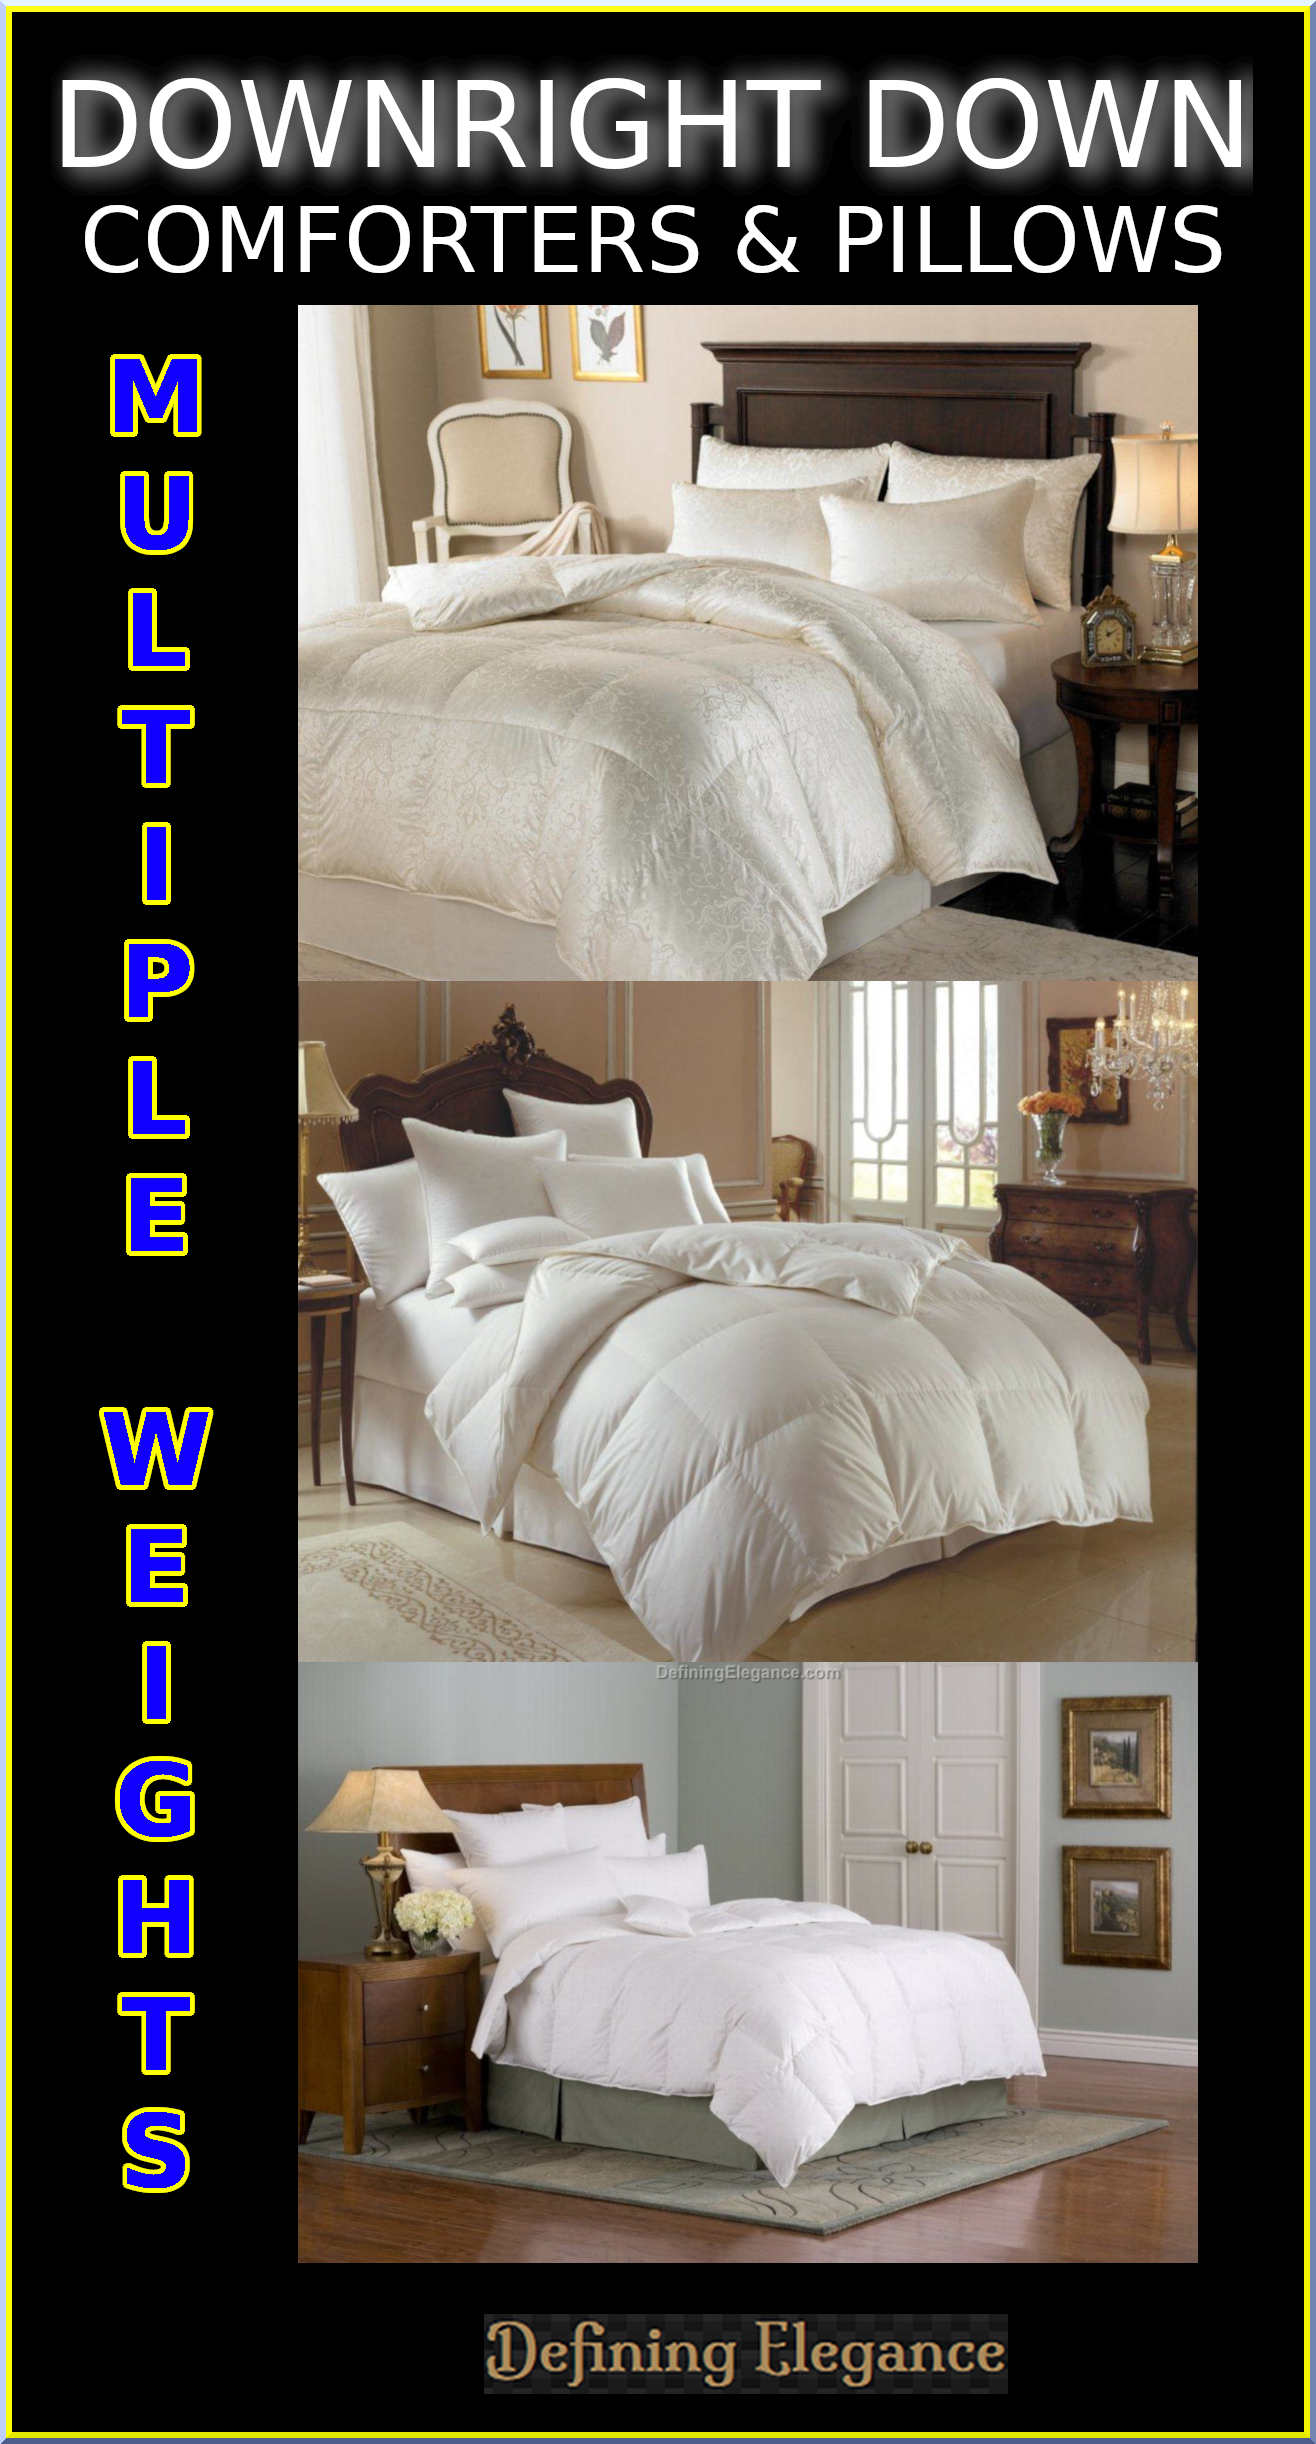 Downright Down Comforters & Pillows